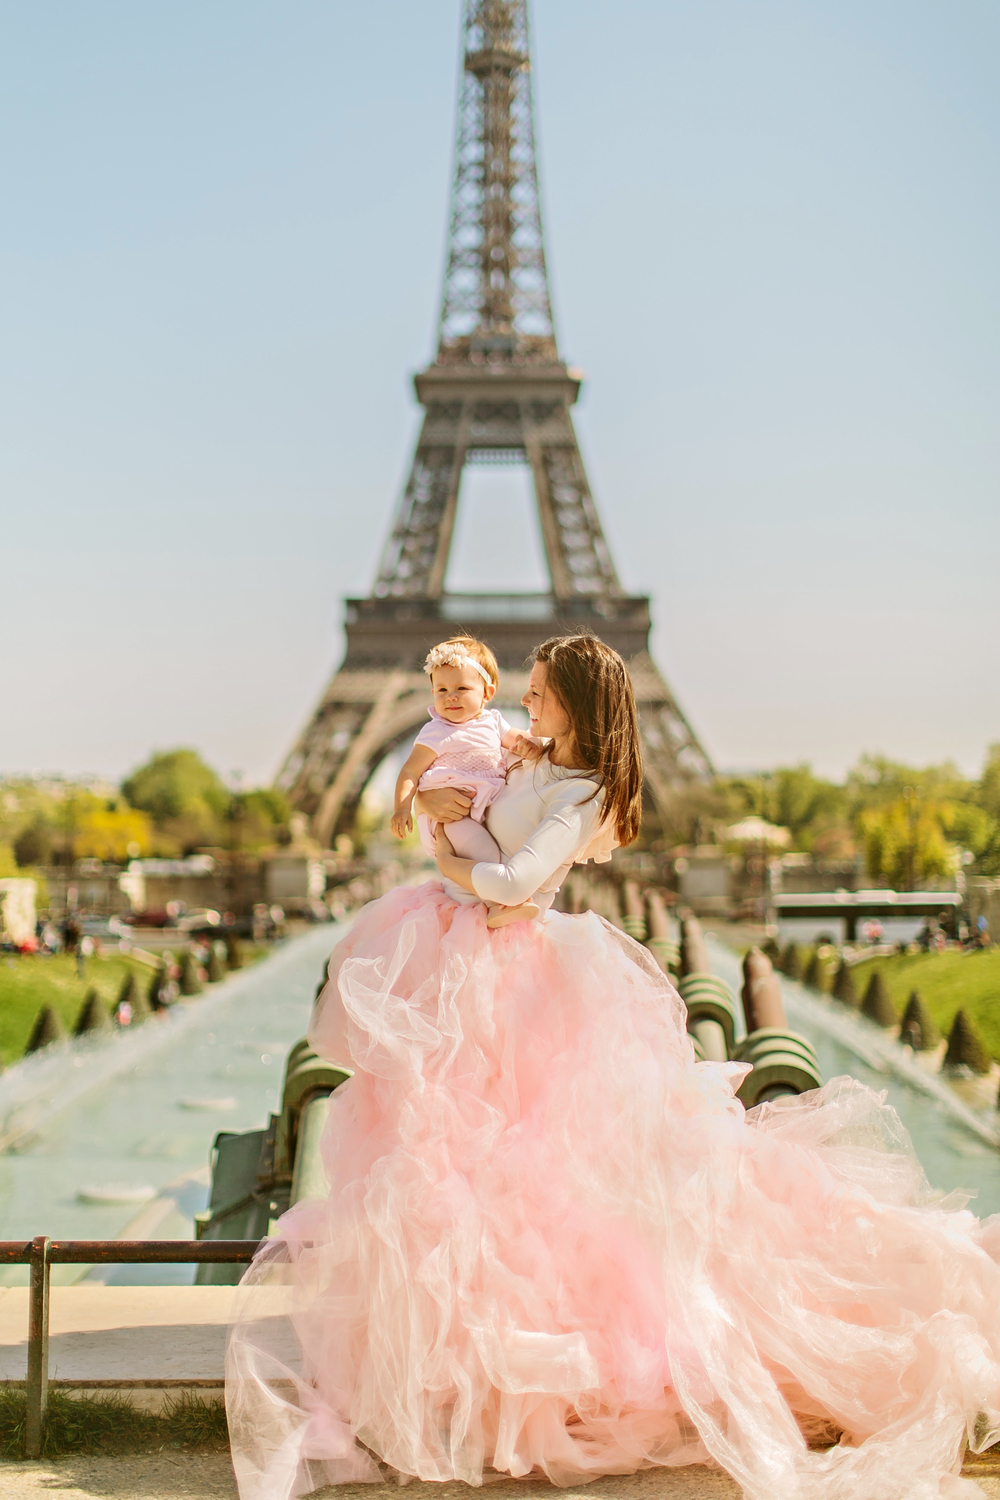 aspiring_kennedy_eiffel_tower_family_shoot_stacy_reeves